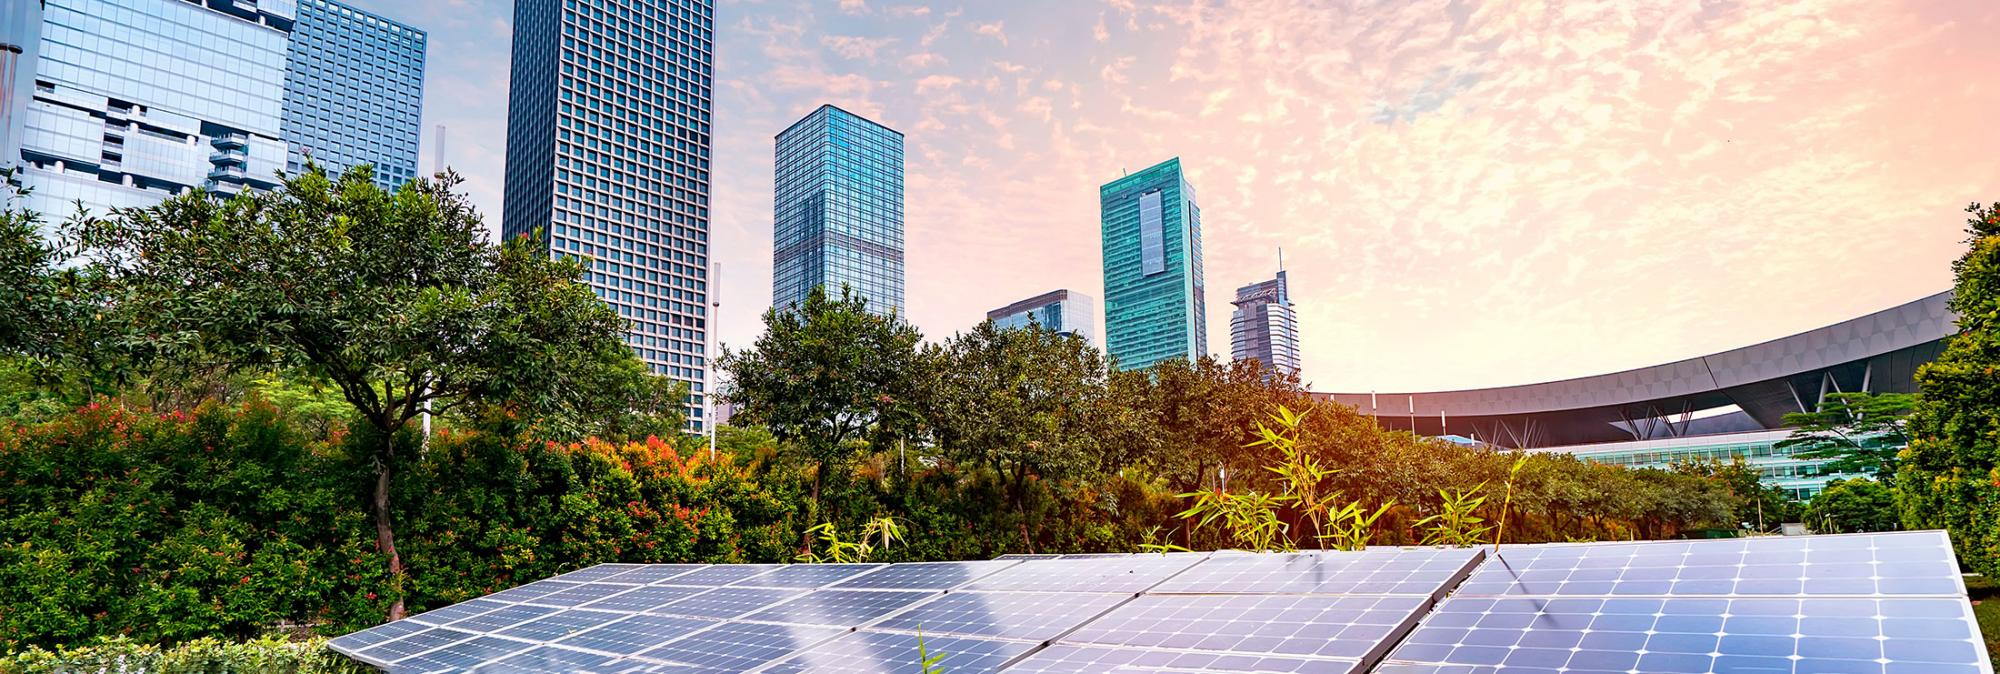 Downtown buildings with photovoltaic panels